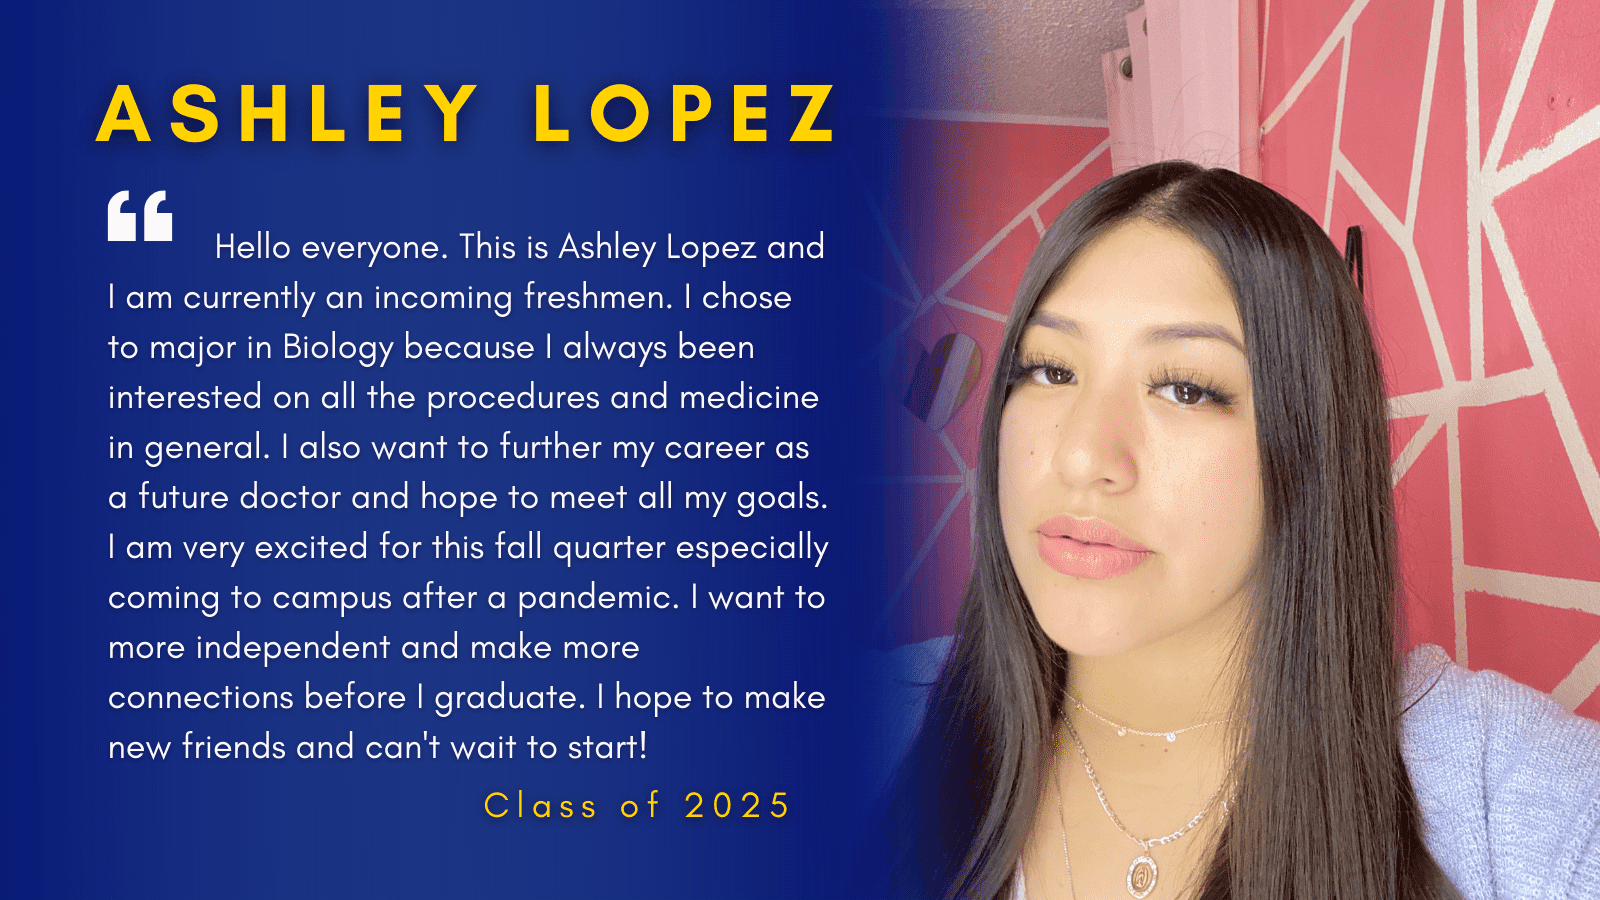 Image of Ashley Lopez with her quote.